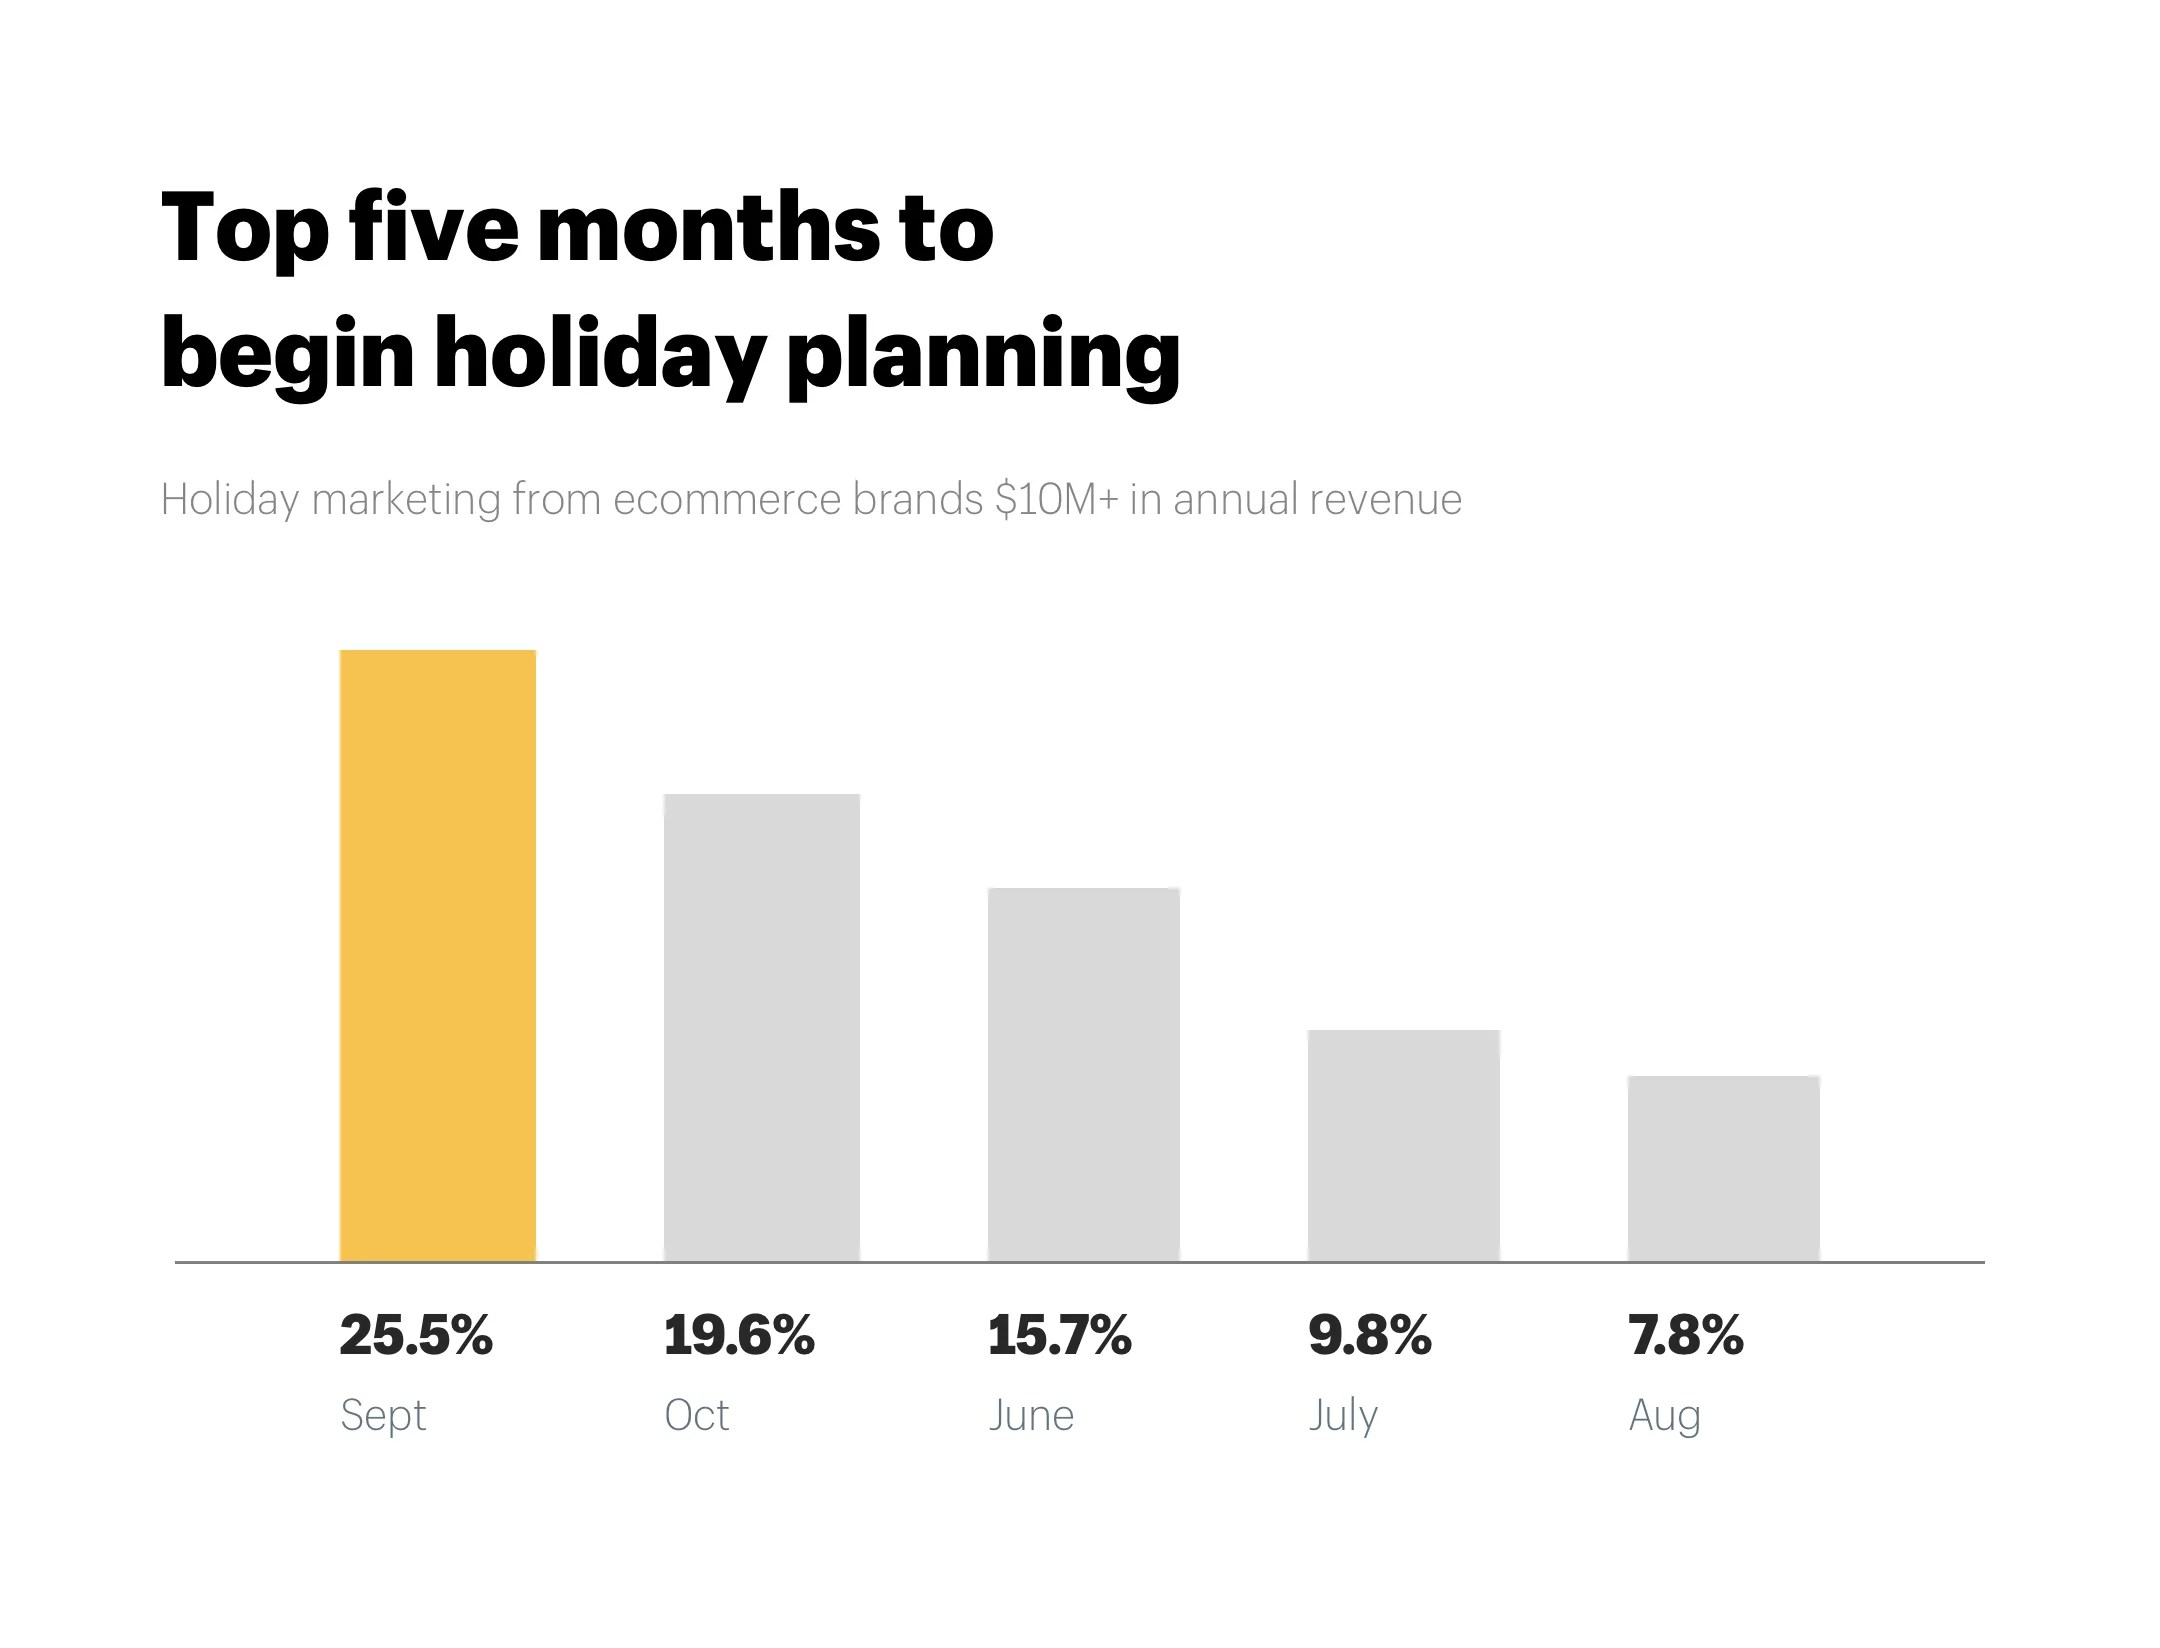 hight resolution of holiday marketing ecommerce top five months to begin holiday planning